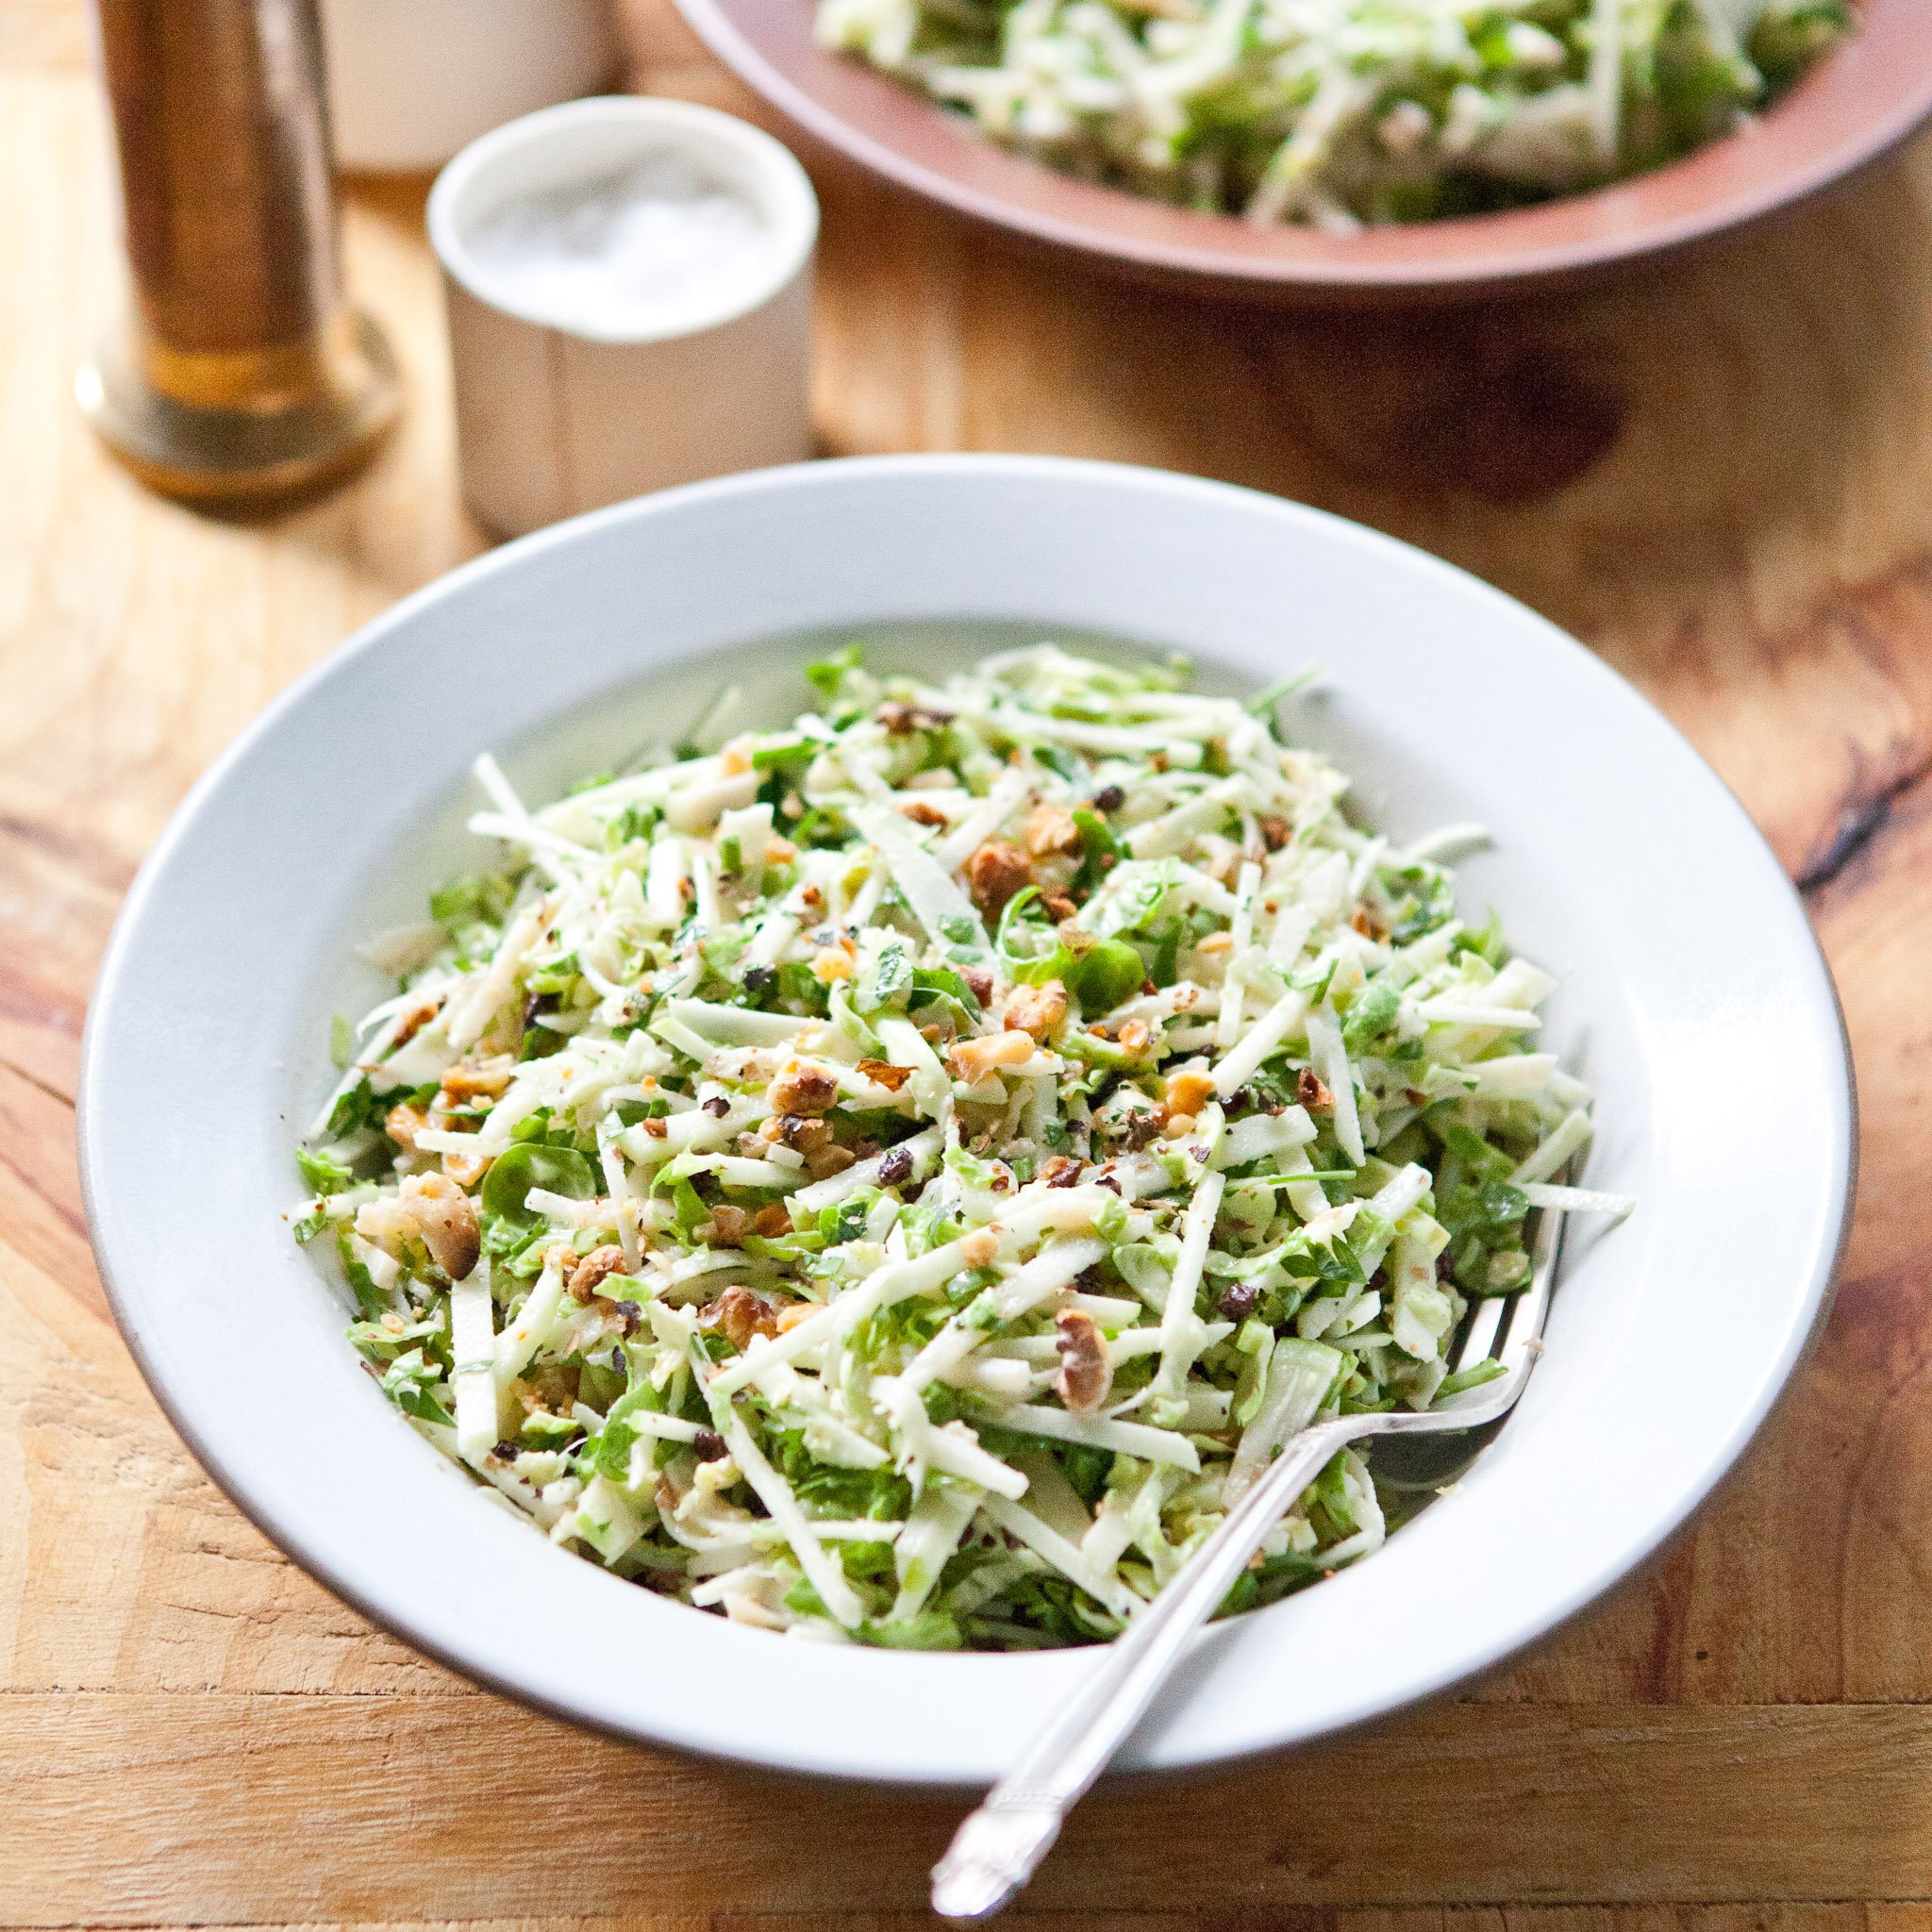 Creamy Apple and Brussels Sprout Salad with Walnuts and Currants